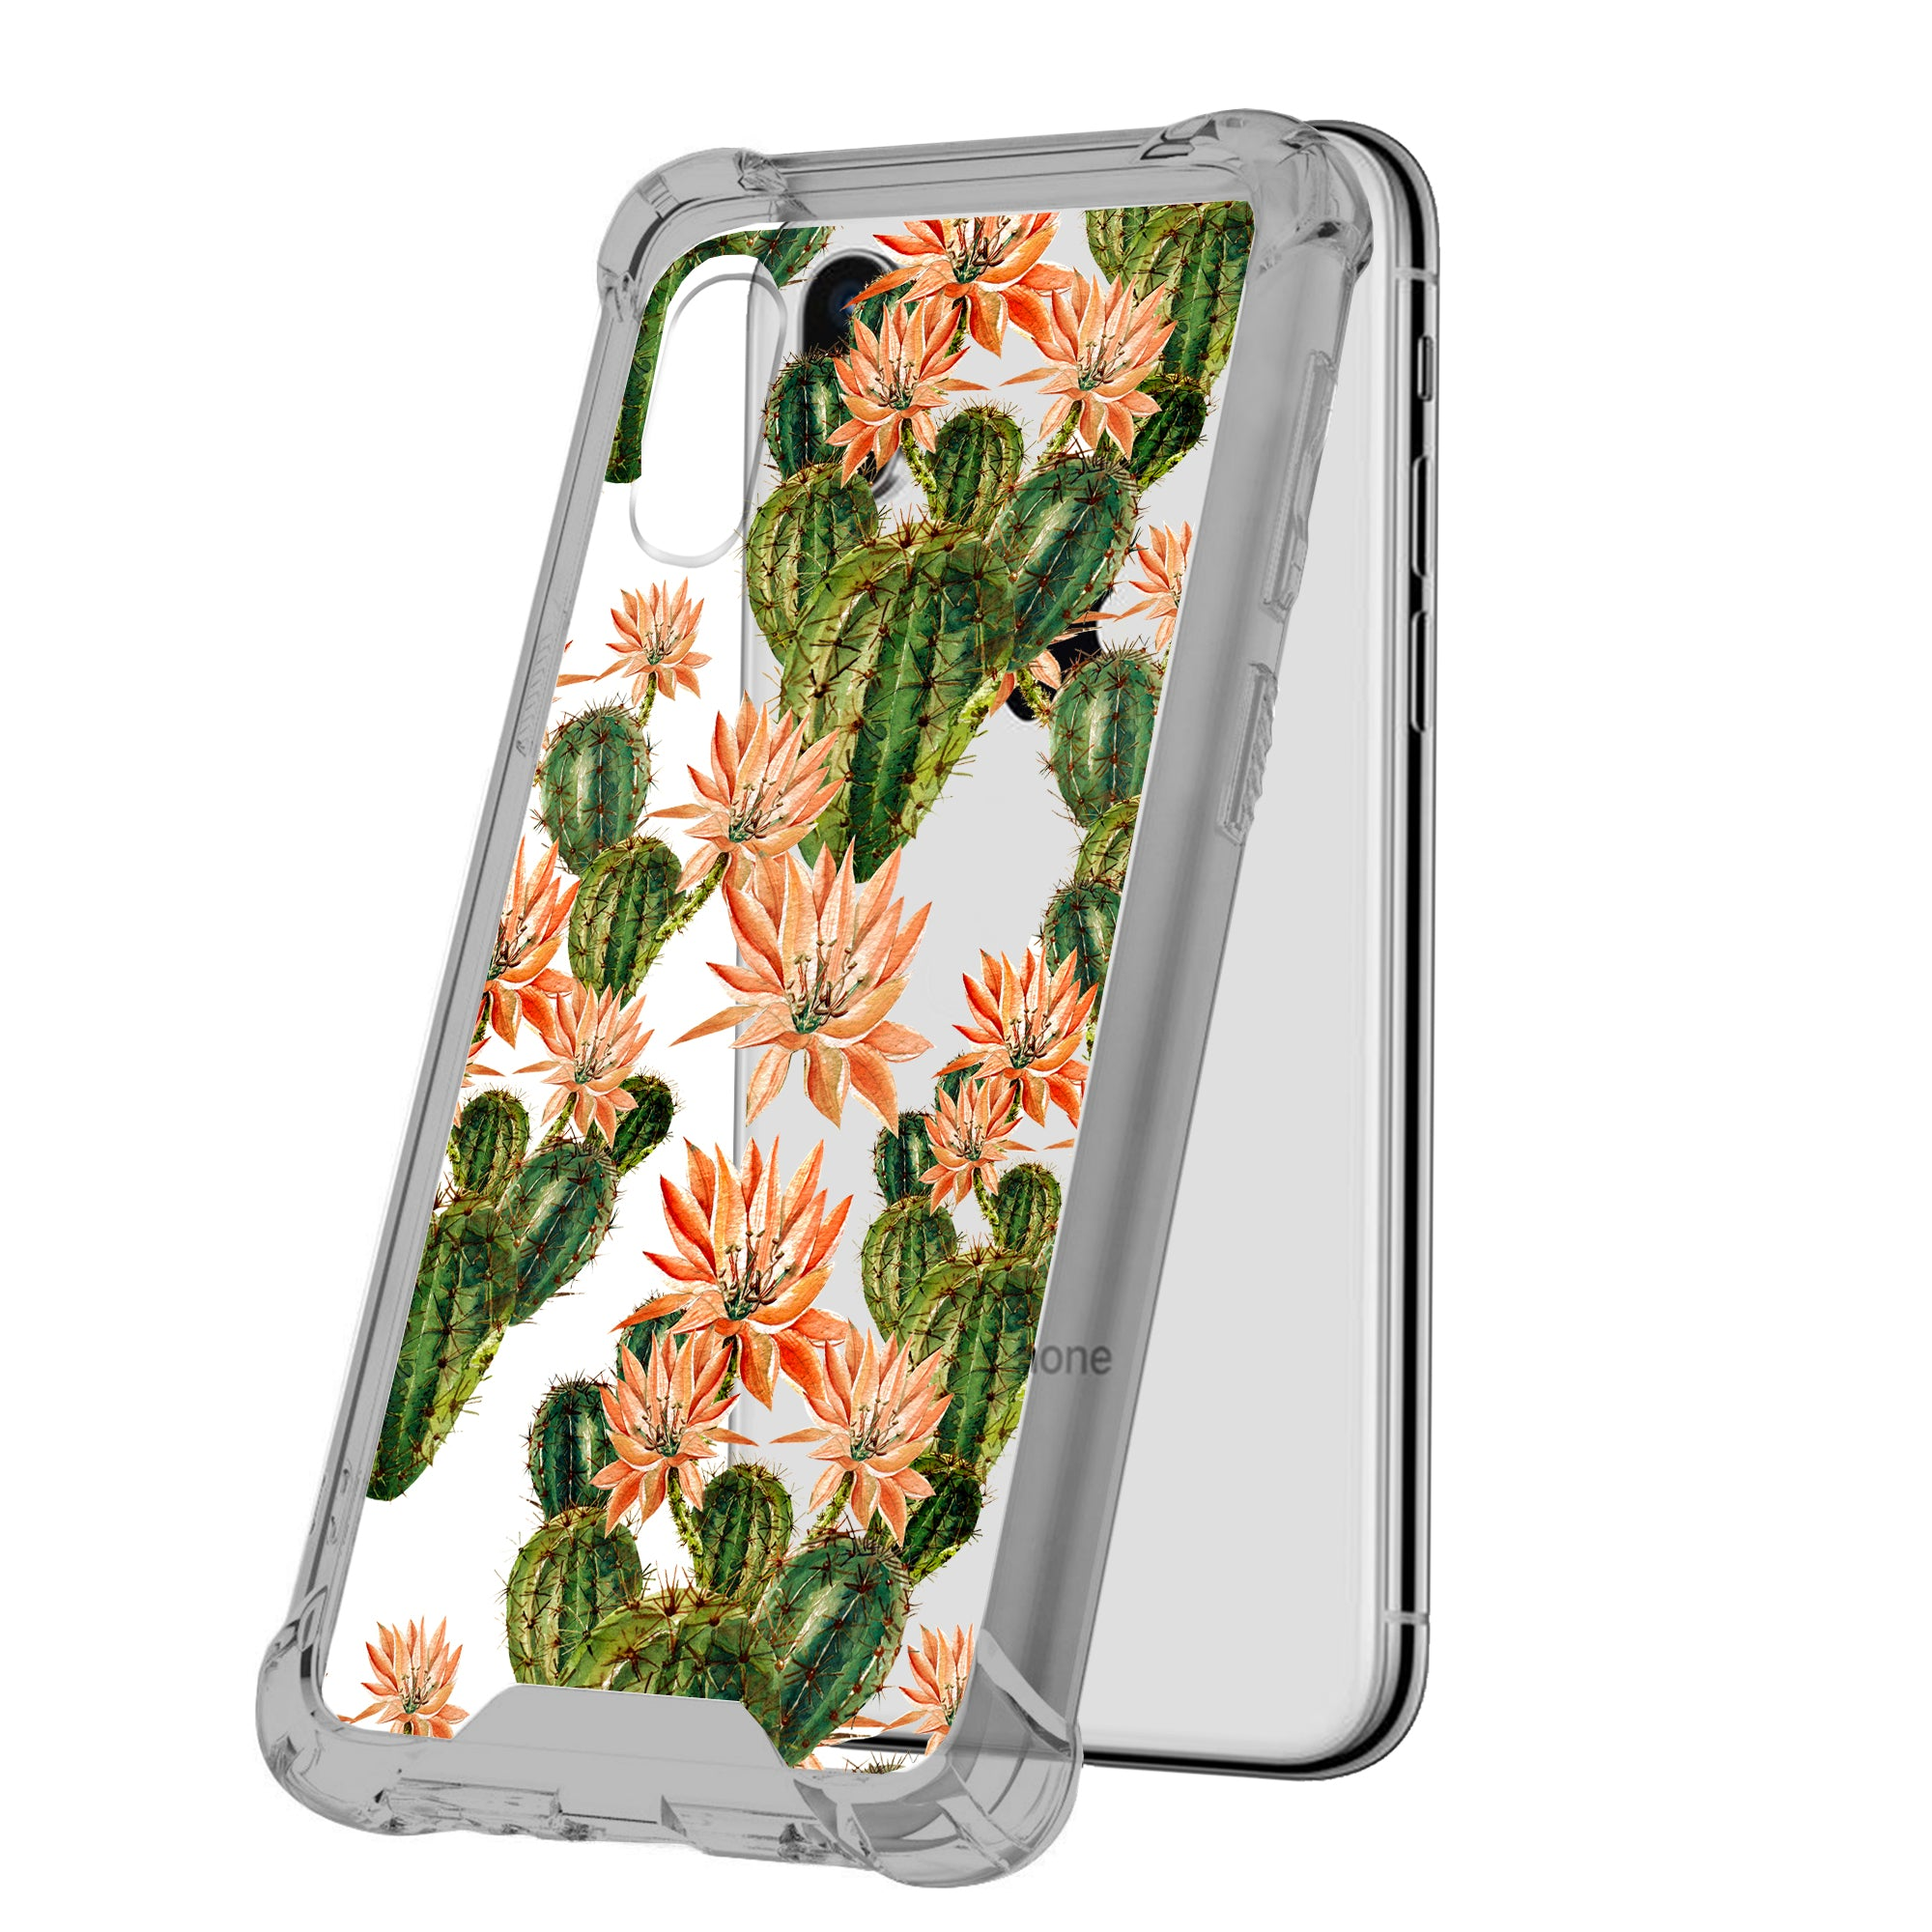 For-Apple-iPhone-Xs-Max-iPhone-Xs-Max-Black-TPU-Bumper-Case-Floral-Designs thumbnail 17